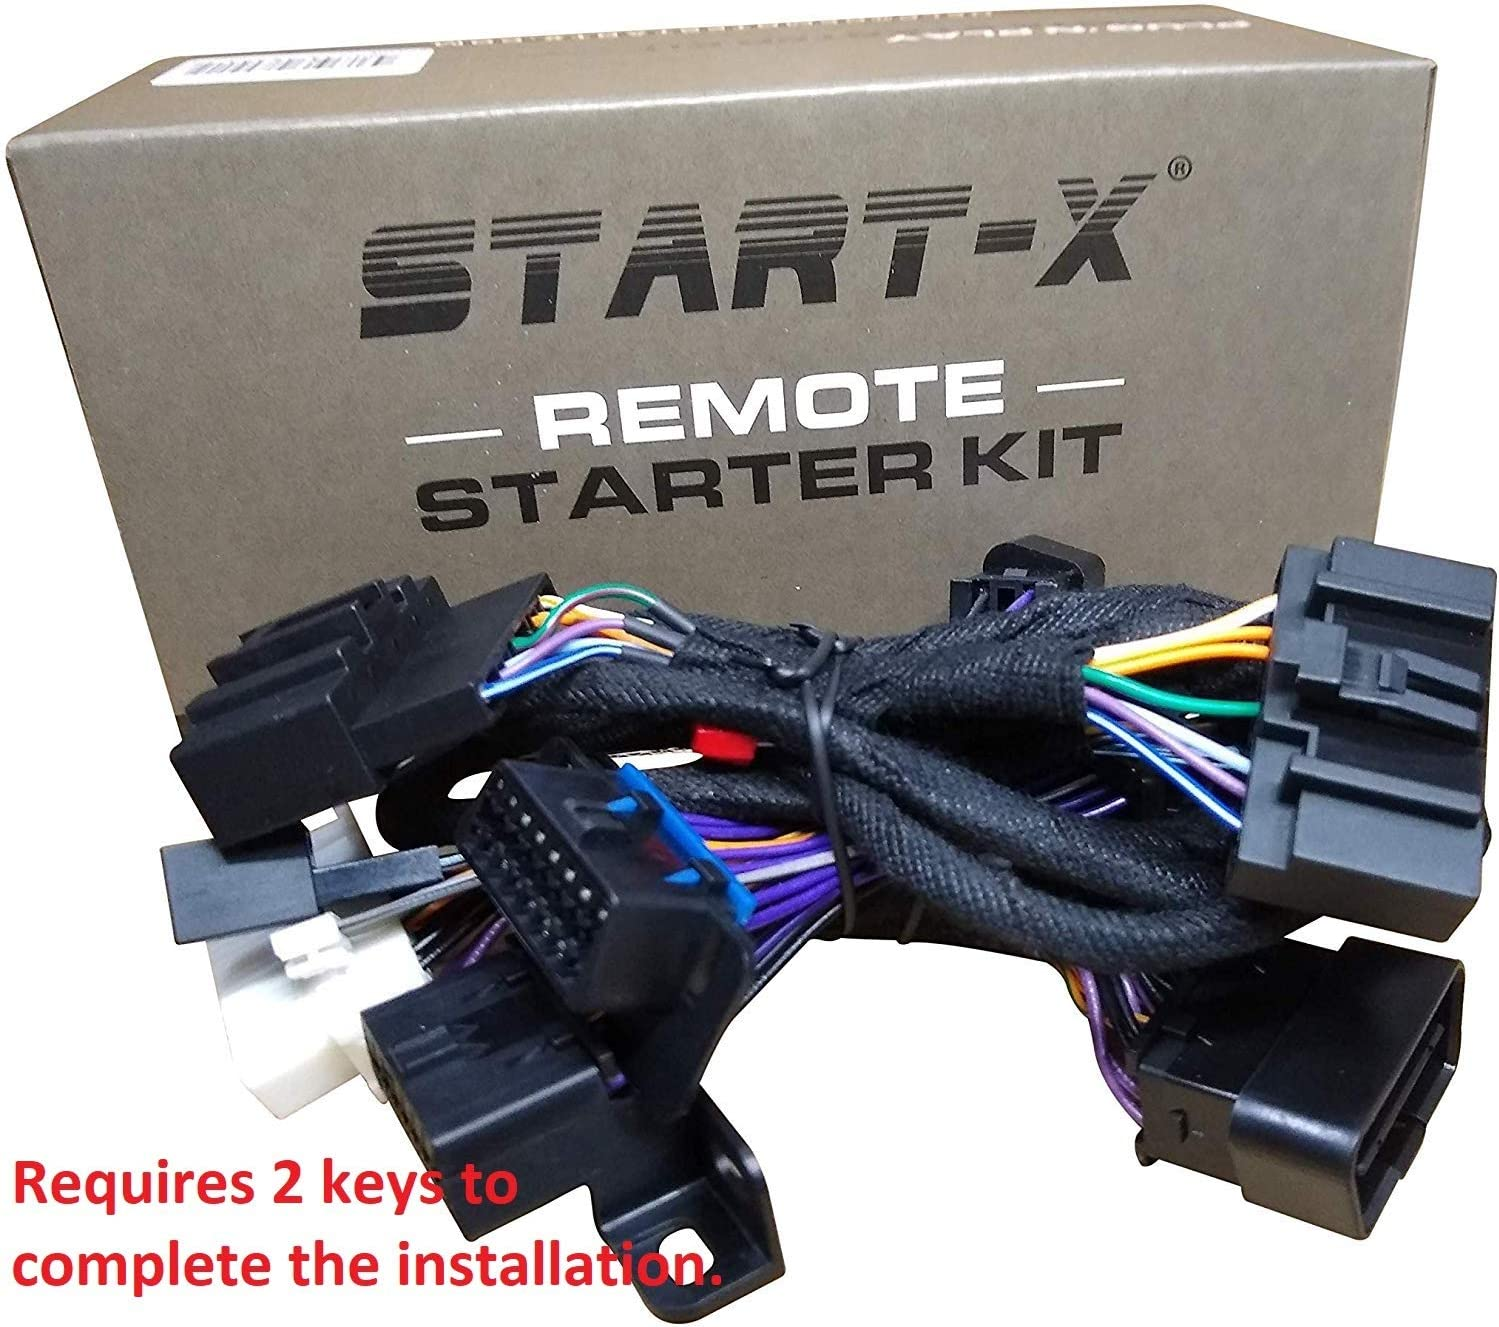 Start-X Remote Starter Kit for Ford F-150 11-14 F-350 11-16 Explorer Focus 12-15 17 F-250 11-16 Expedition 15 Edge 11-14 F-550 11-16 F-450 11-16